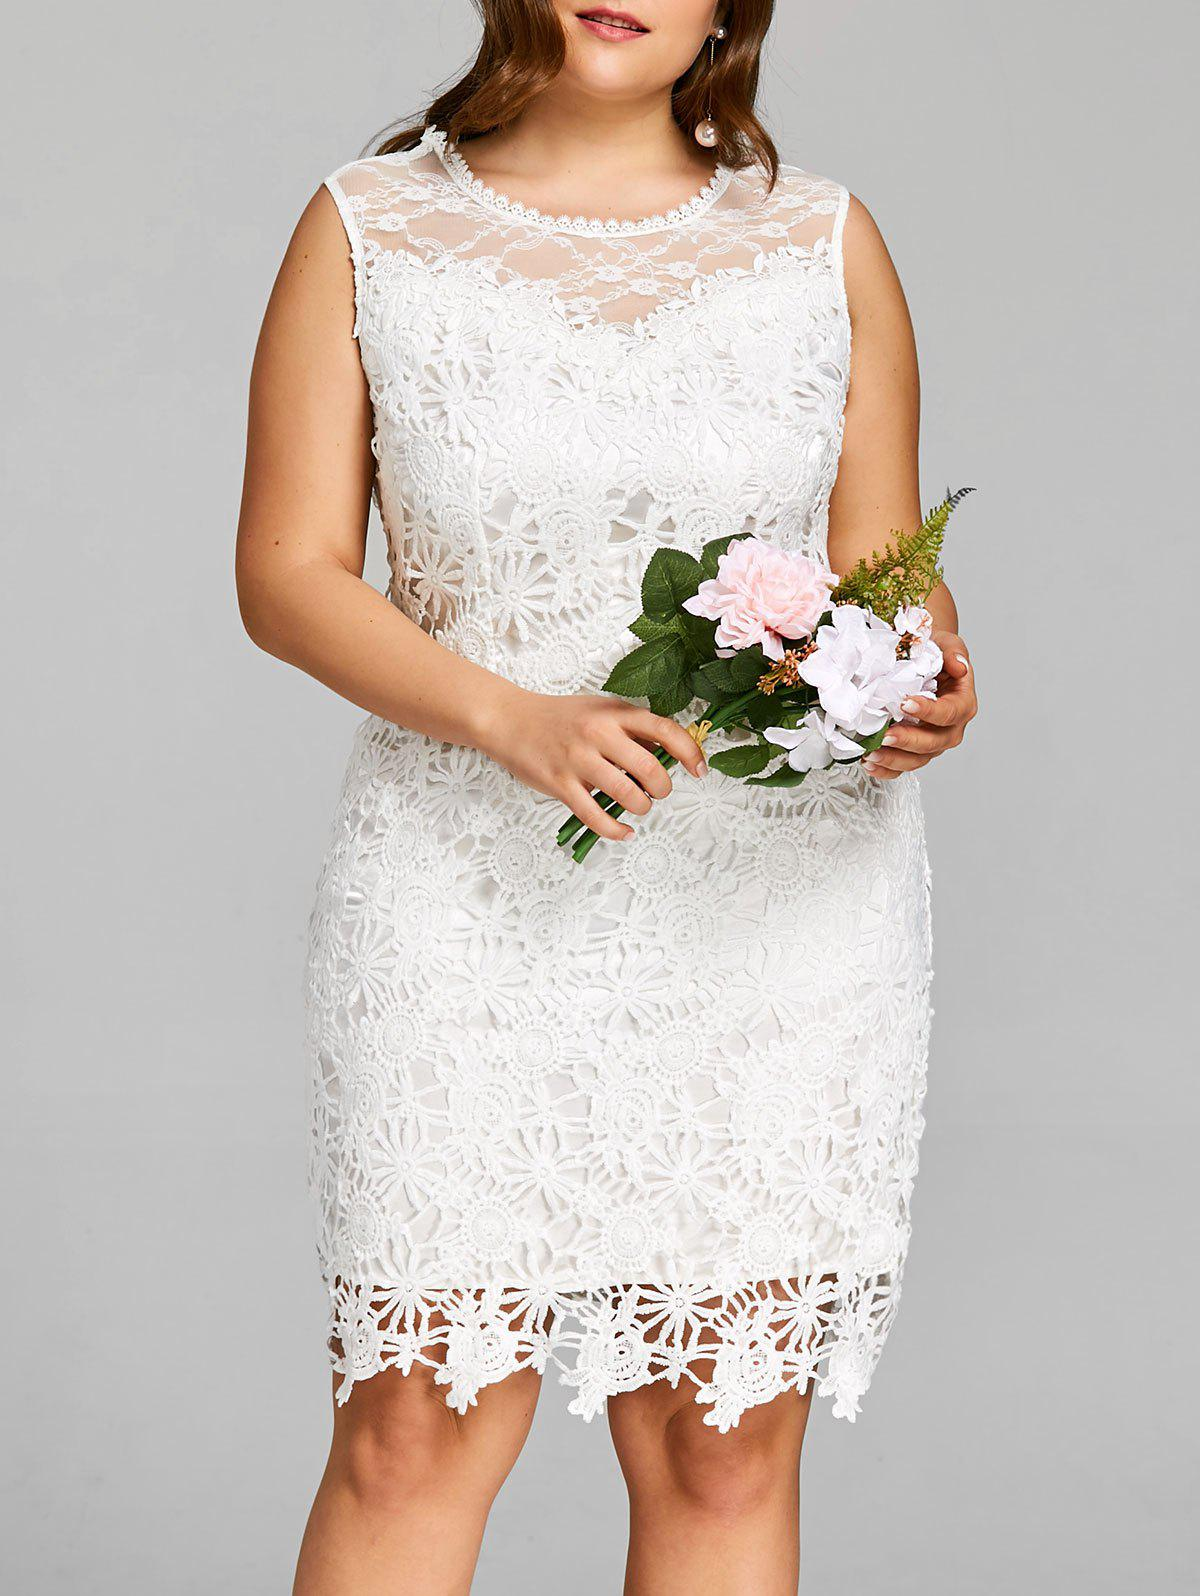 39% OFF] Plus Size Sleeveless Knee Length Lace Dress | Rosegal